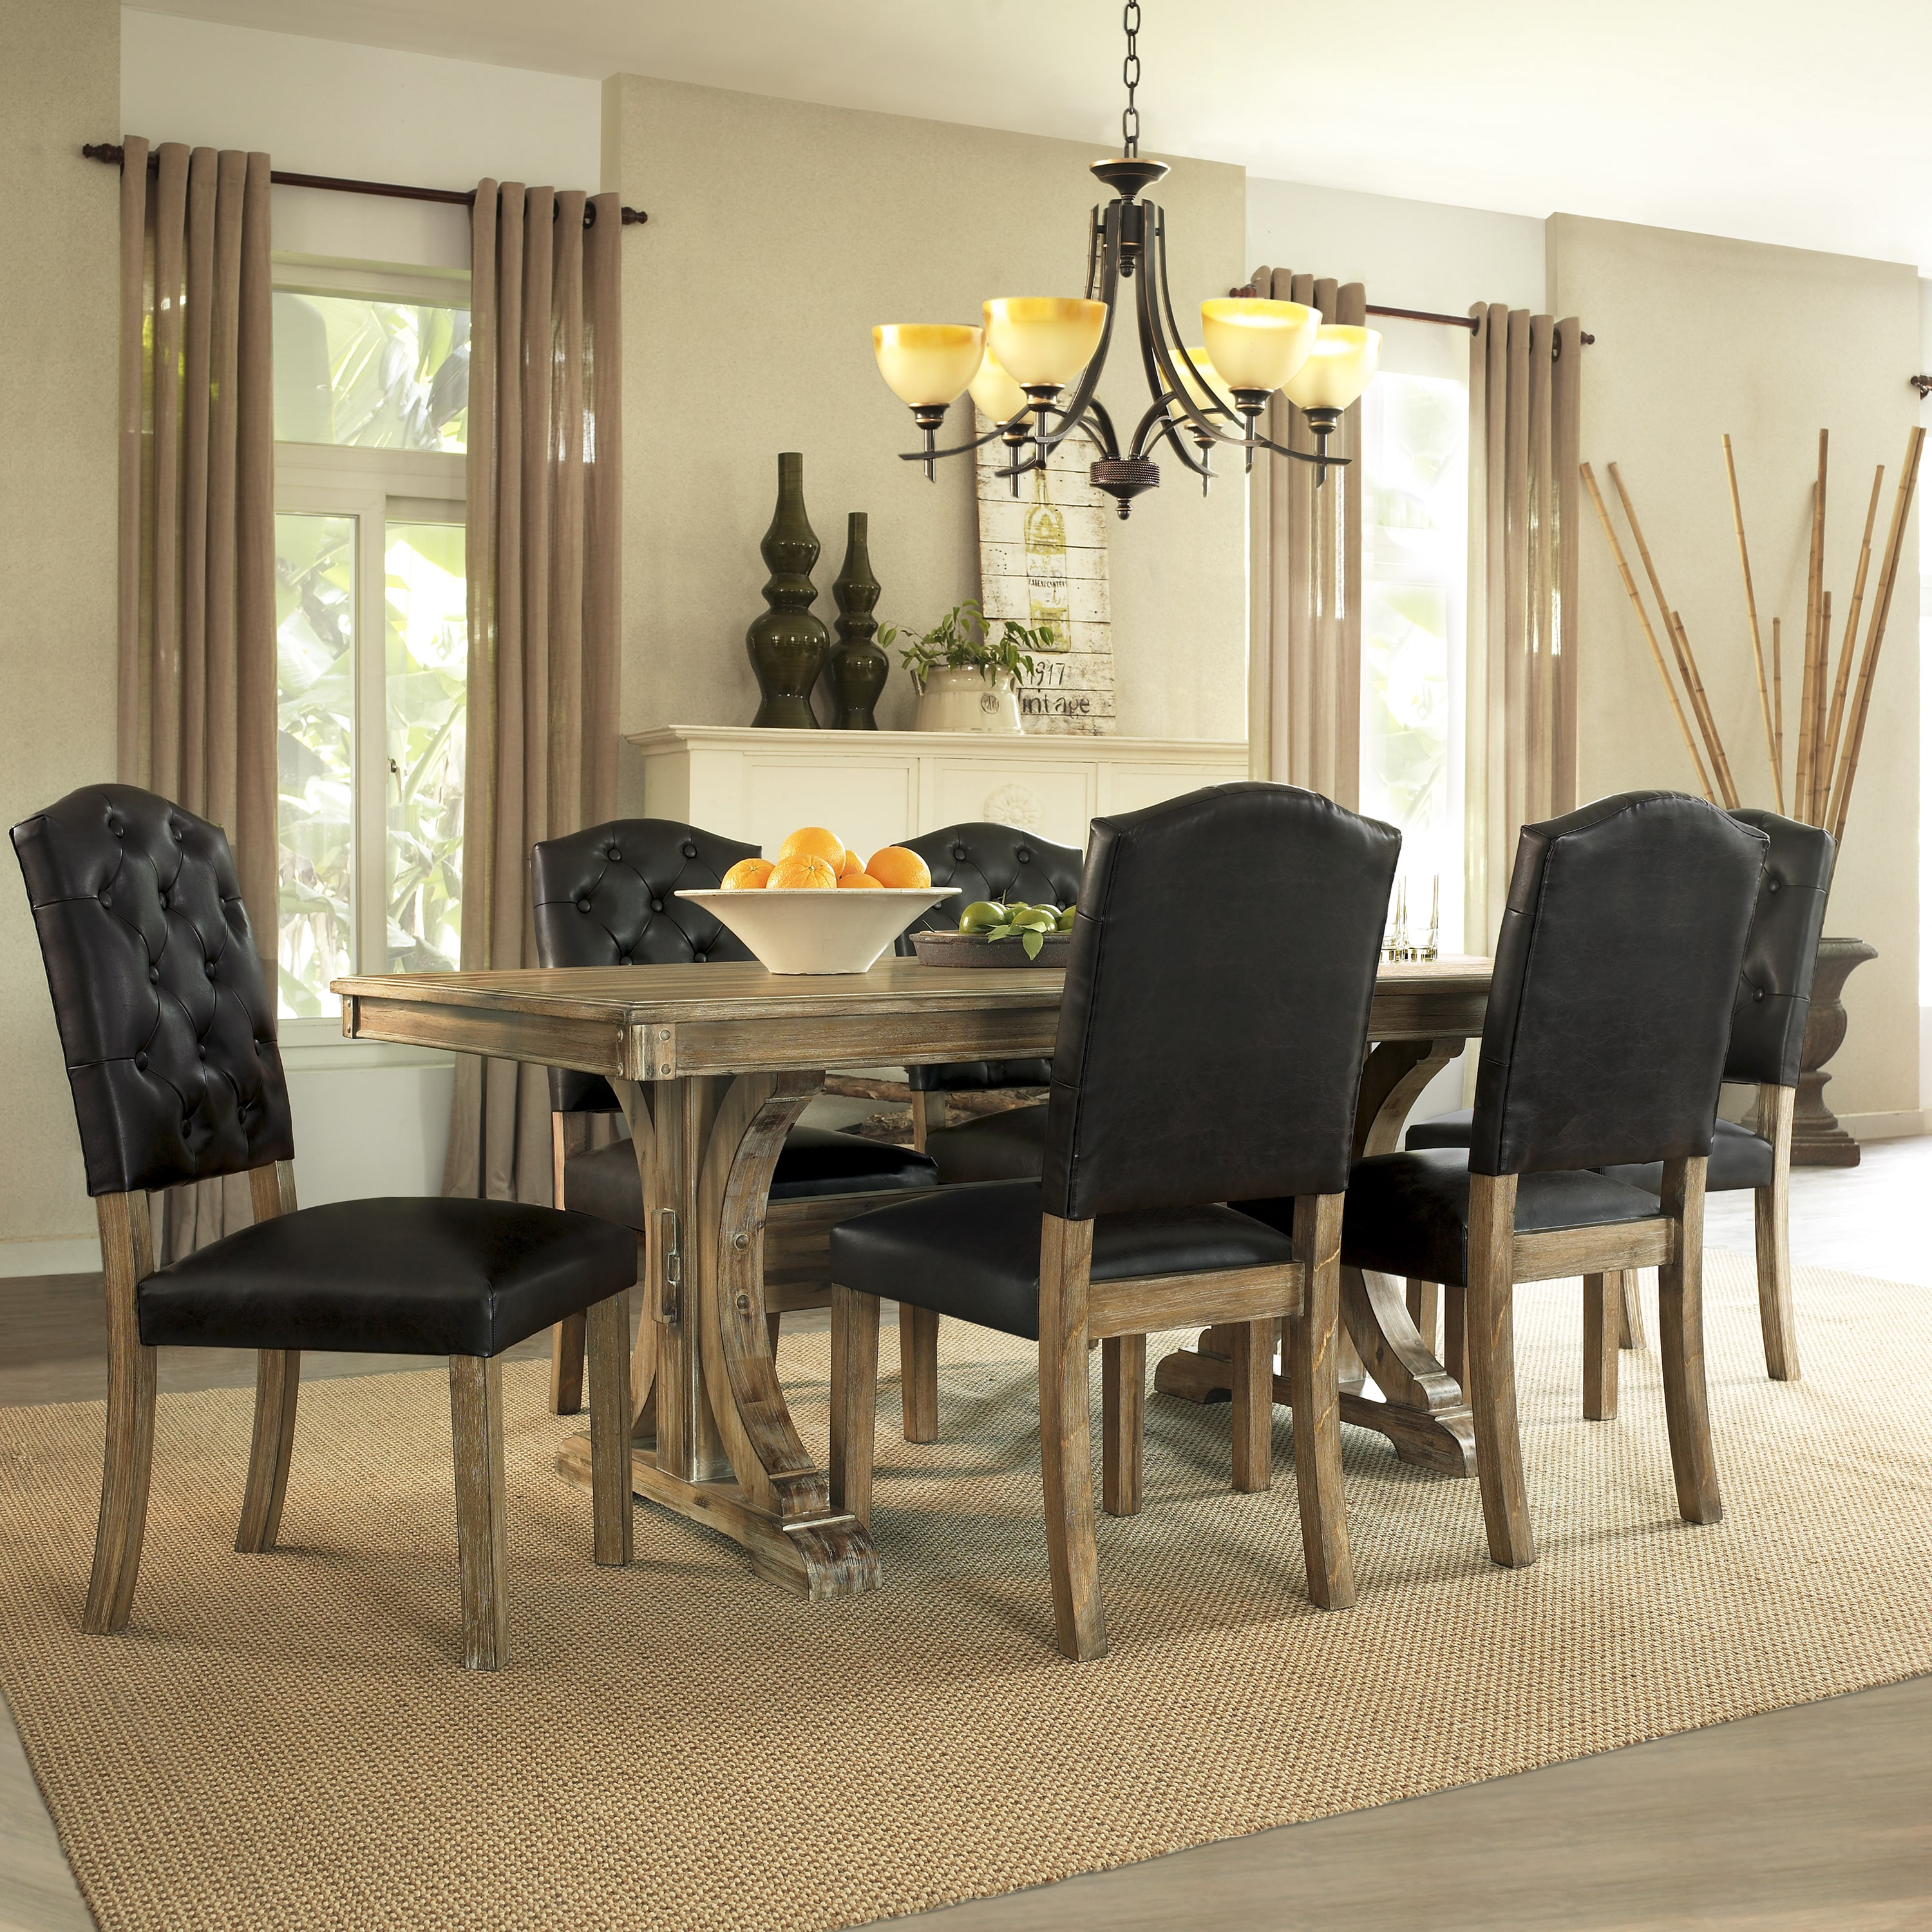 Luxury 7 Pc Dining Set Walmart